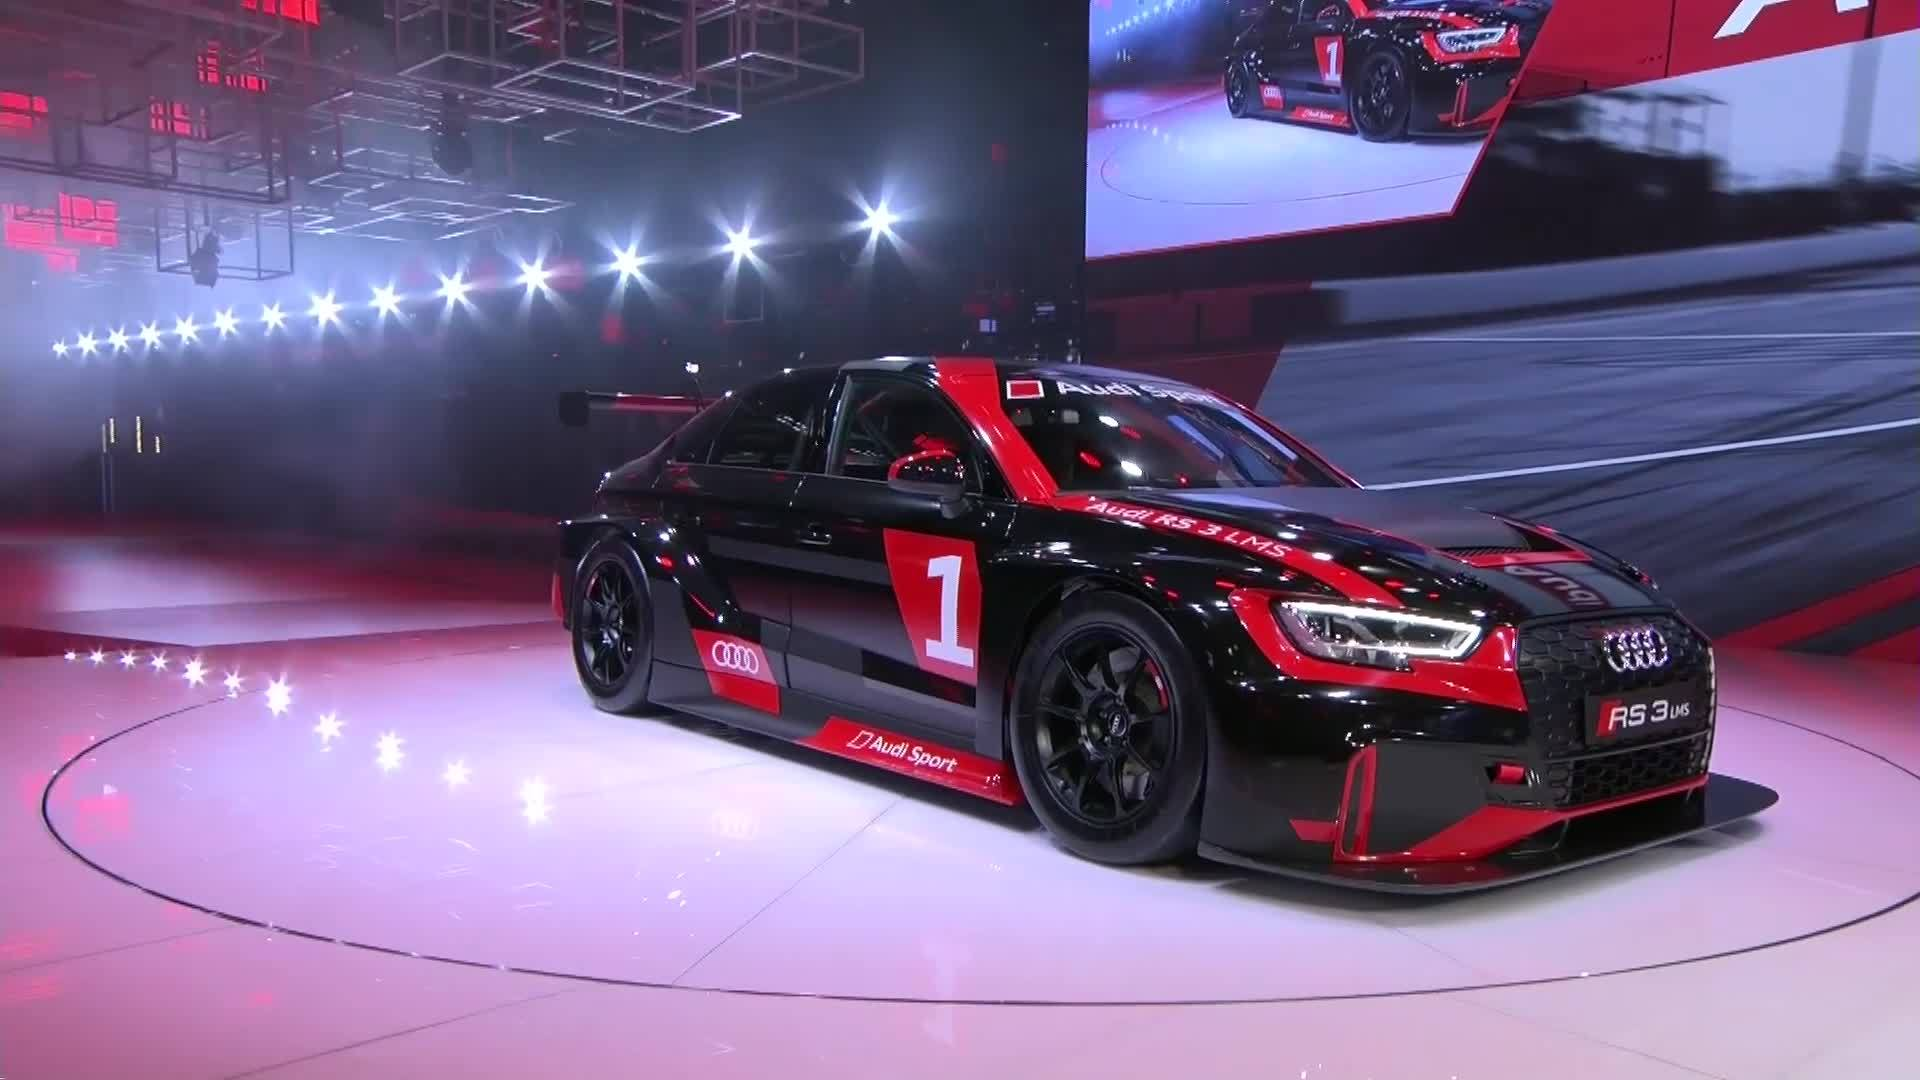 Die Highlights der Audi Sport Pressekonferenz in Paris